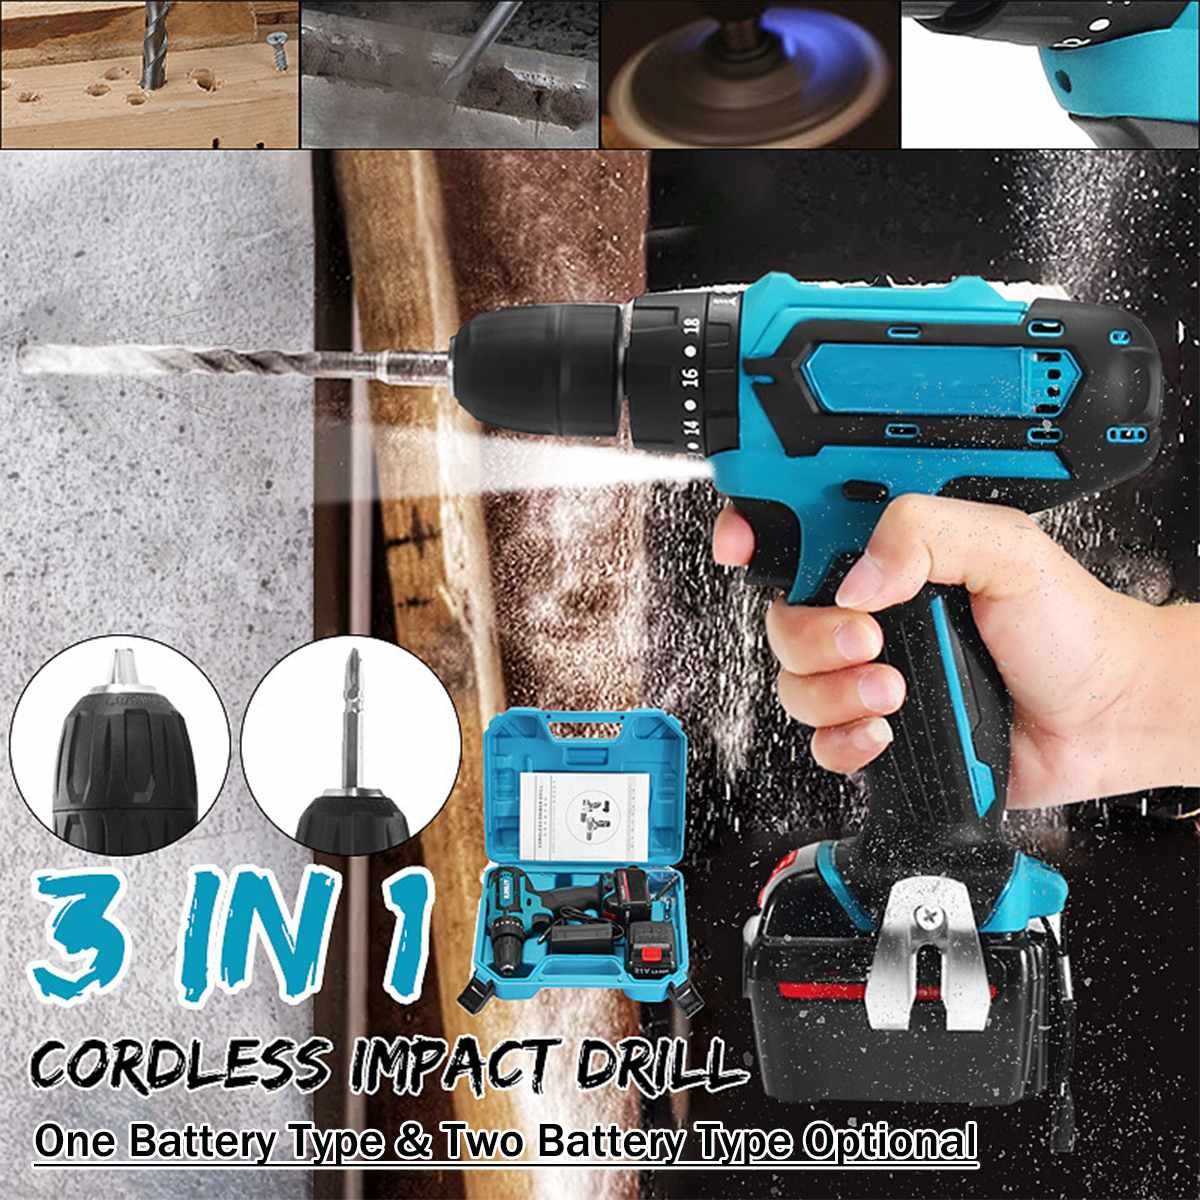 12V 21V 1 2battery Max Electric Screwdriver Cordless Drill Mini Wireless Power Driver DC Lithium Ion